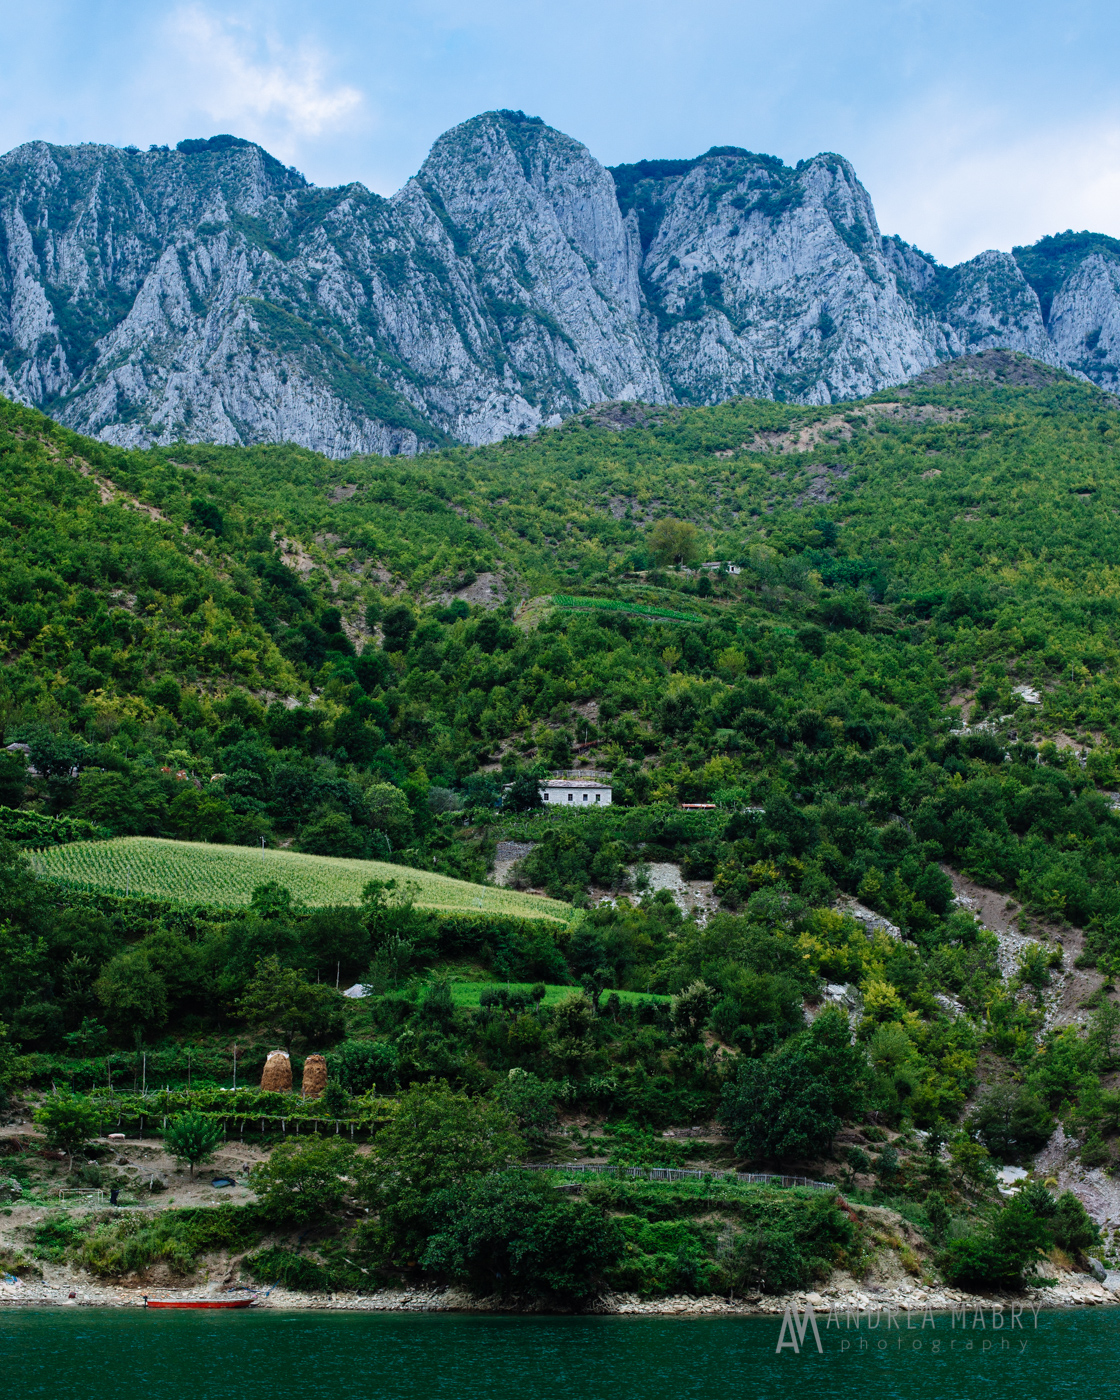 After riding in cars, boats, and buses around northern Albania, I think that if you ever wanted to disappear, you could easily do so there. We saw many houses like this one that are off on their own with no apparent road linking them to... anything.